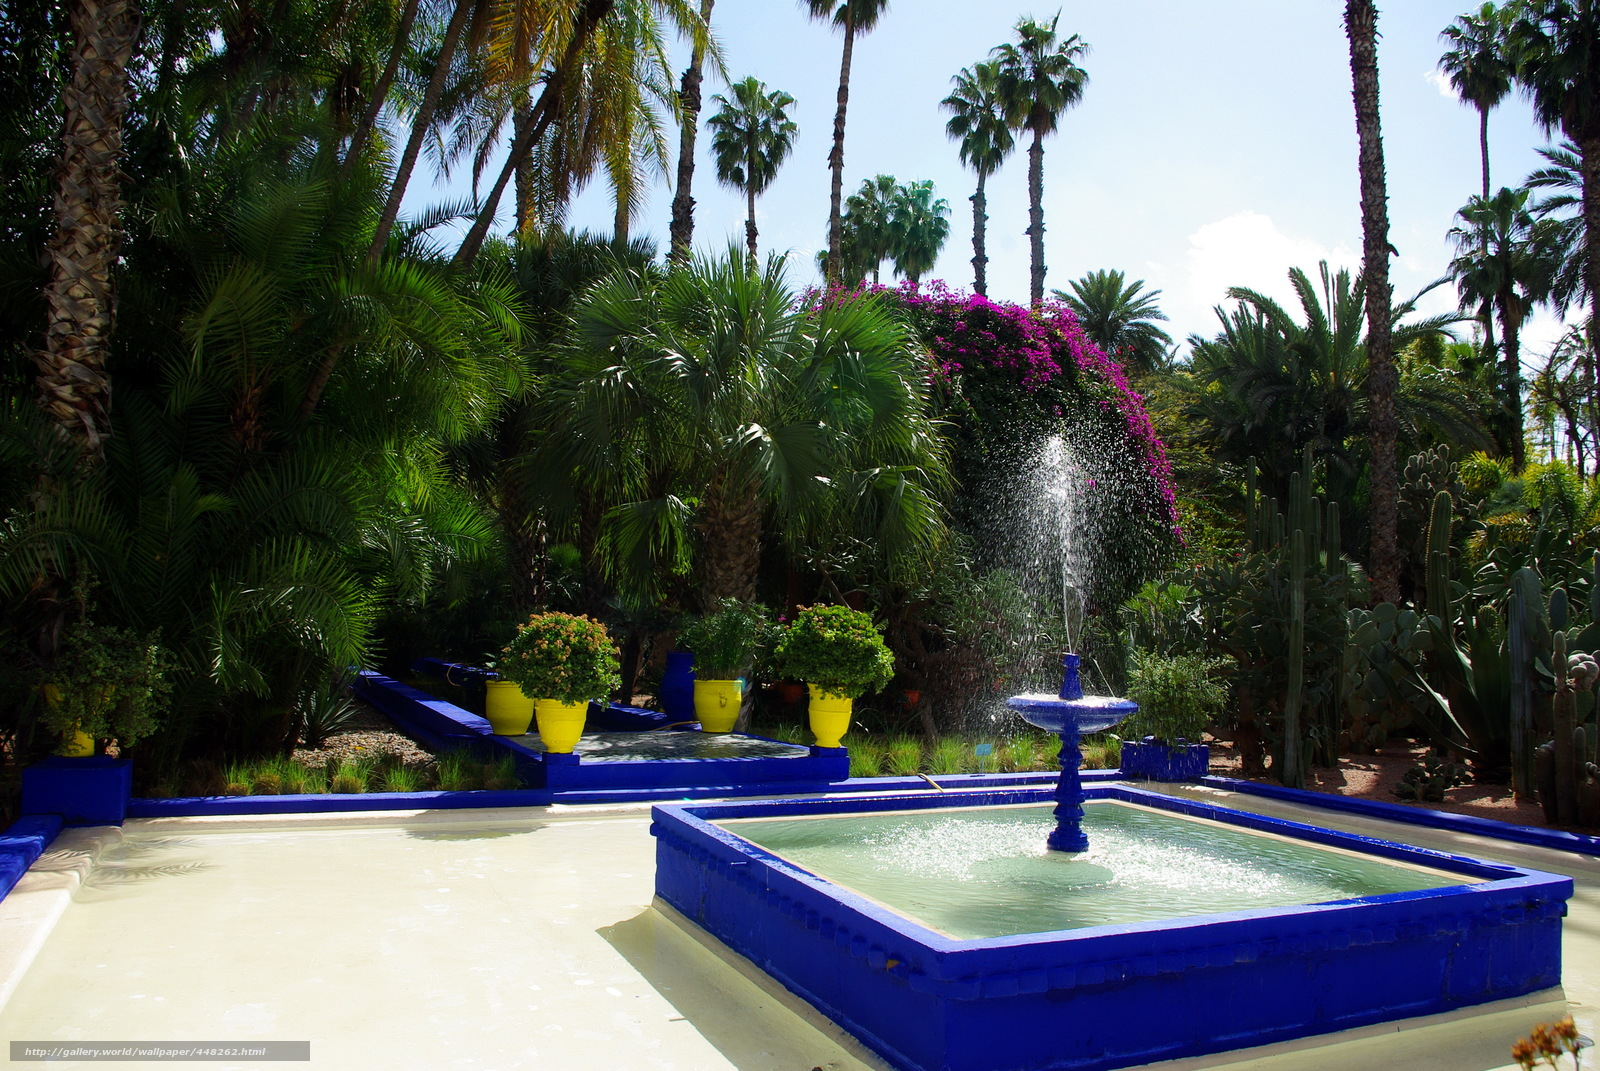 tlcharger fond d 39 ecran maroc marrakech jardin majorelle fontaine fonds d 39 ecran gratuits pour. Black Bedroom Furniture Sets. Home Design Ideas